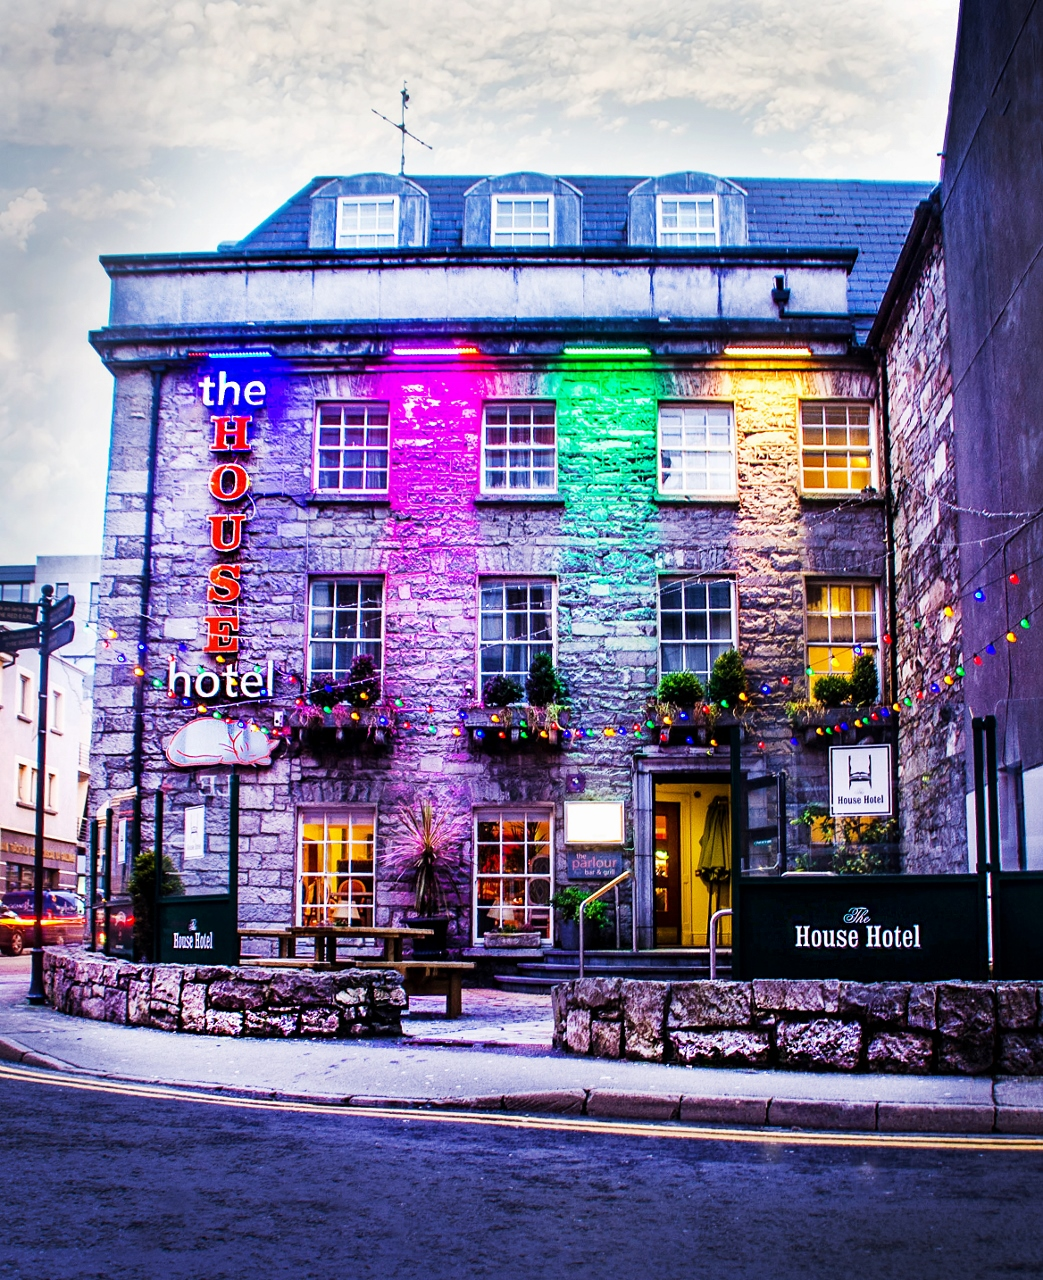 House Hotel in Galway Ireland  by Julie Miche Travel Blogger